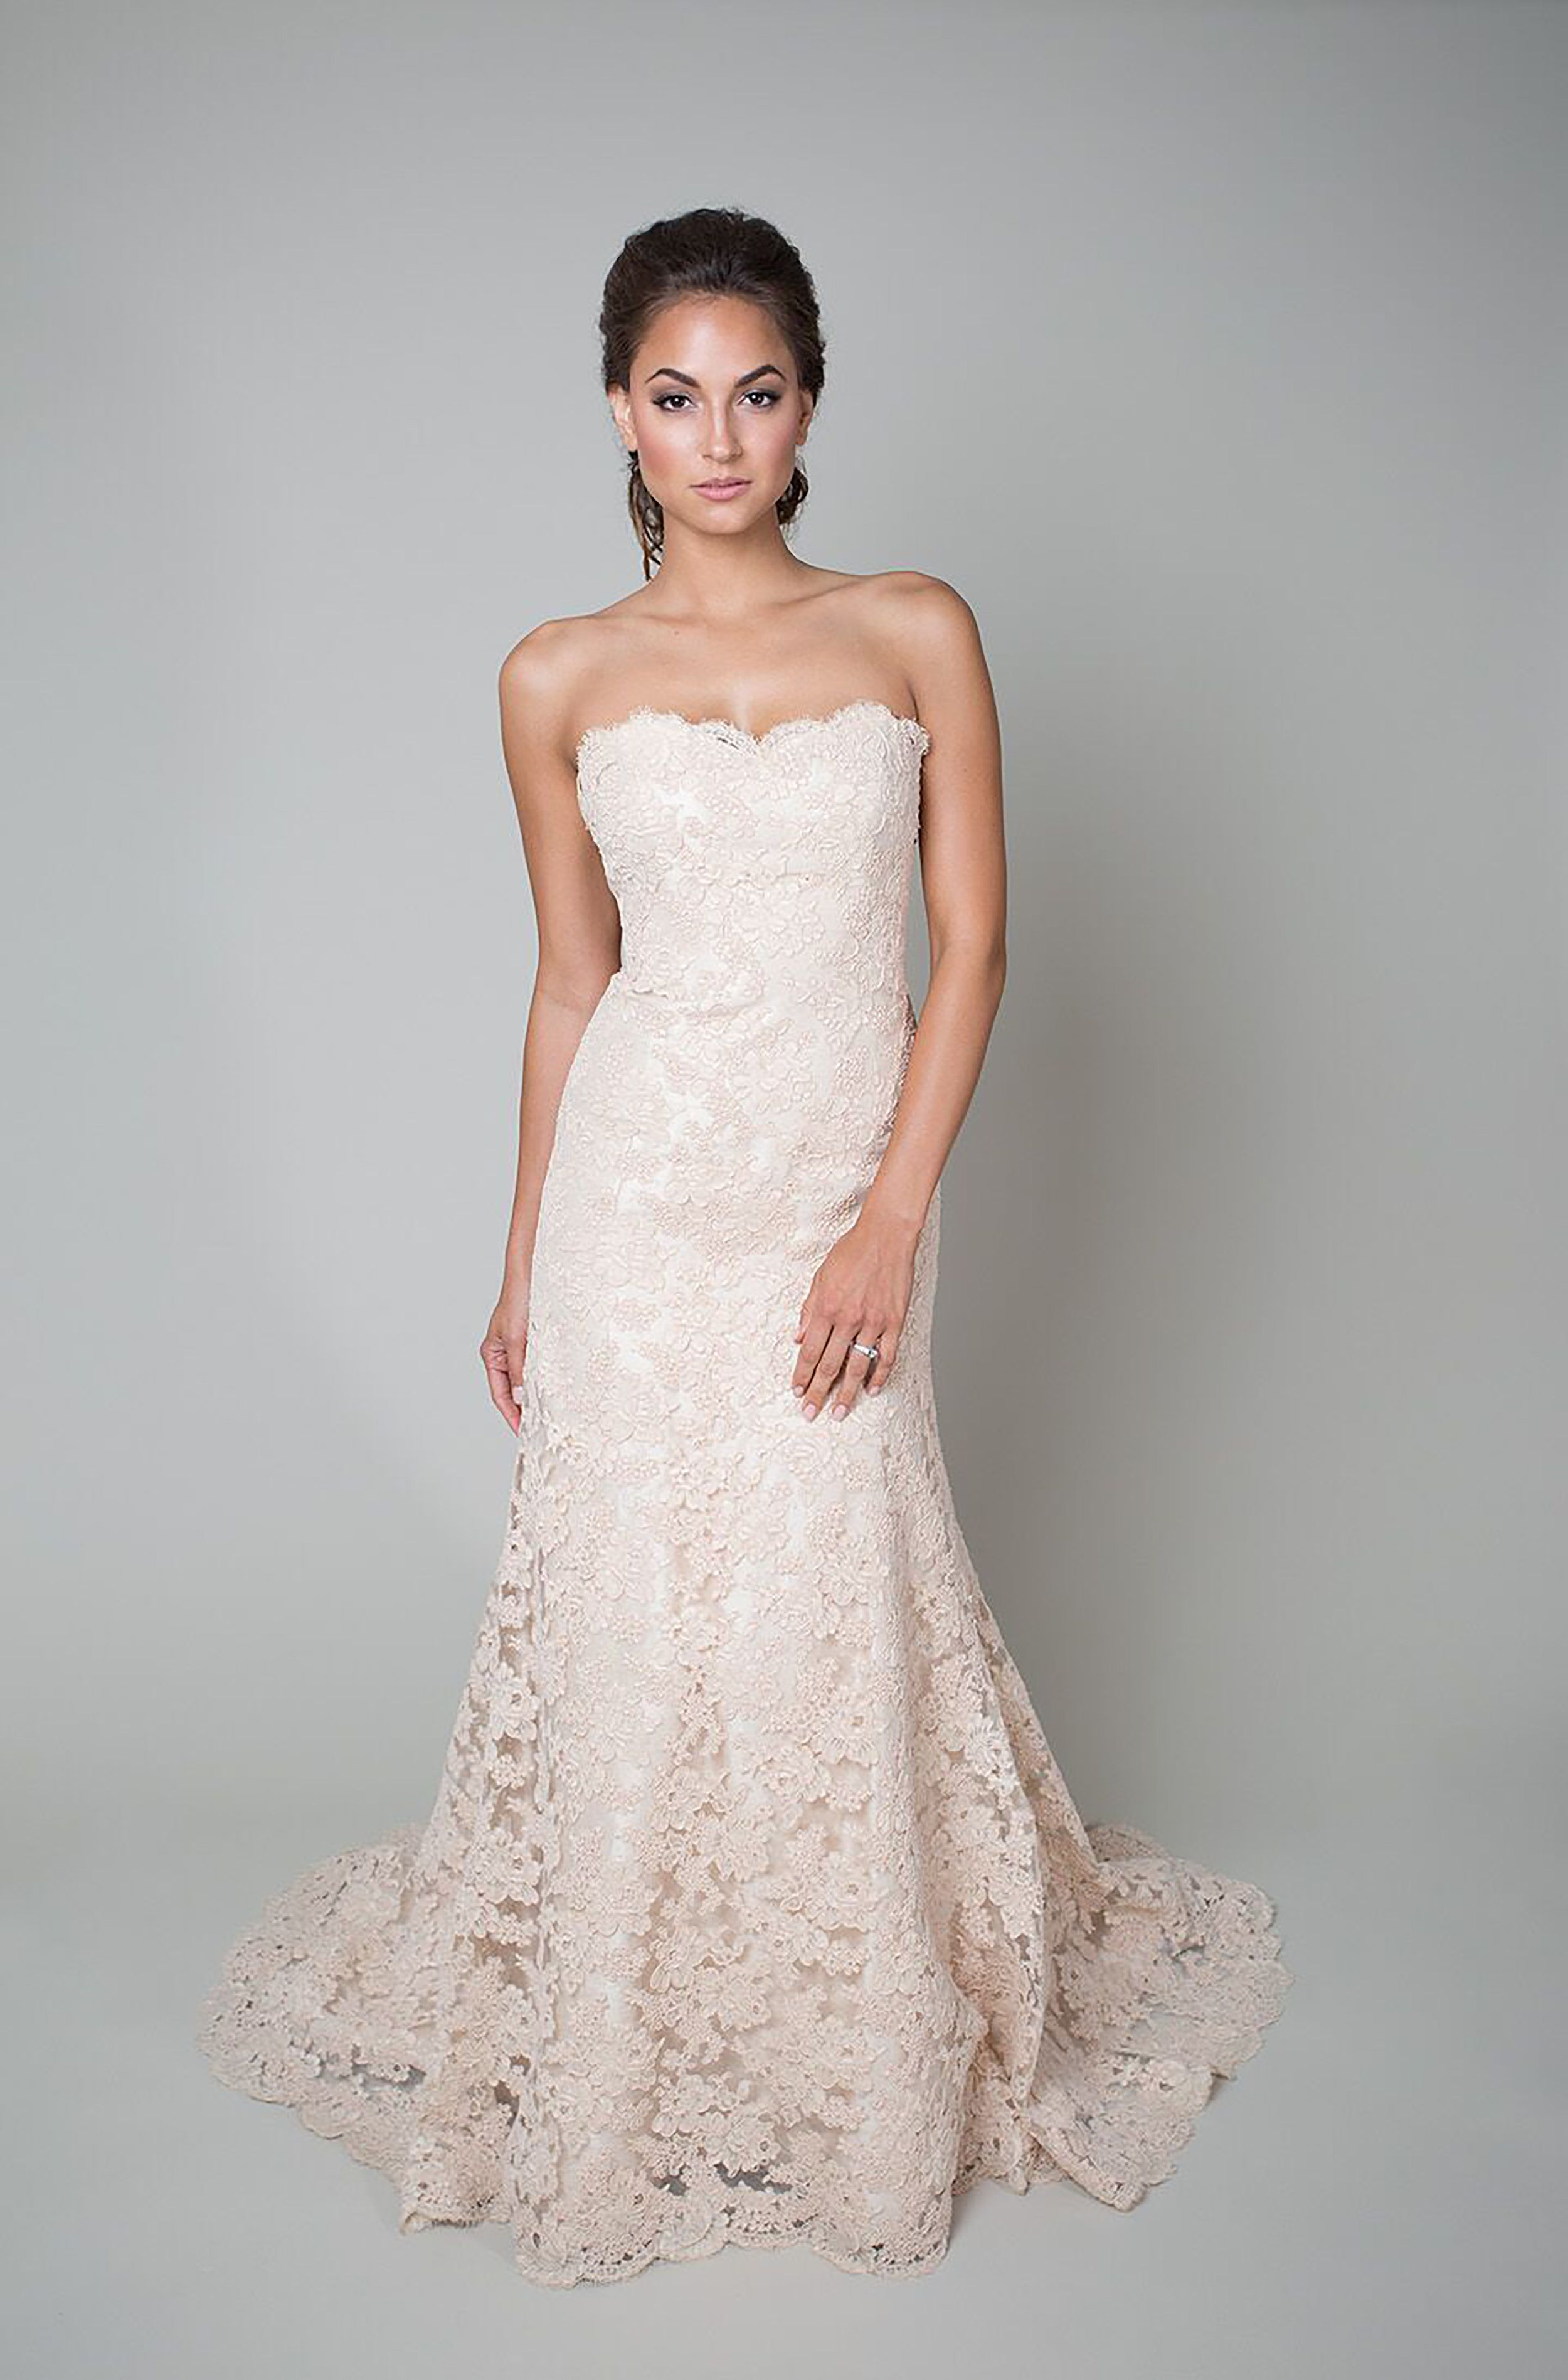 Wedding dress with bow on back  This trumpet style wedding gown features a blush base with blush